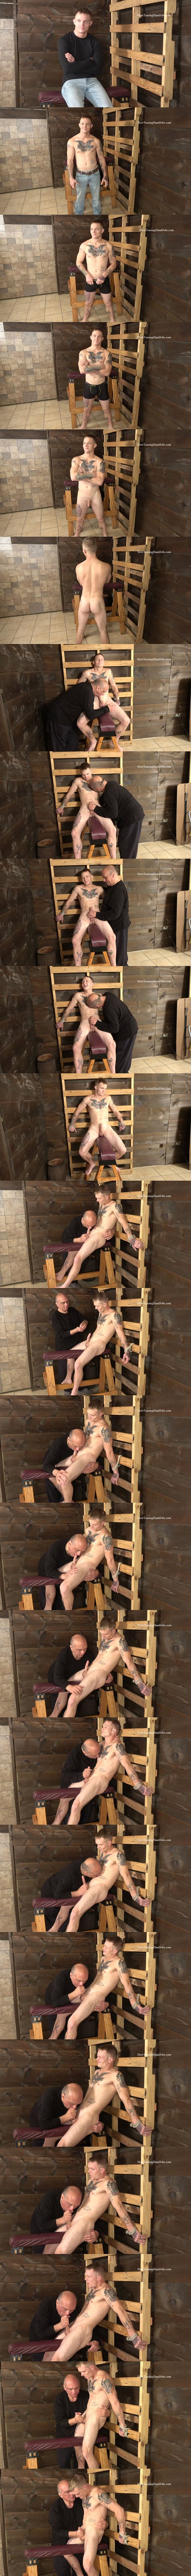 Hot newcomer, married iron worker Buddy Meyers gets tied to a rack and slowly edged by master Rich until Rich jerks the cum out of Buddy's hard boner at Slowteasinghandjobs 01